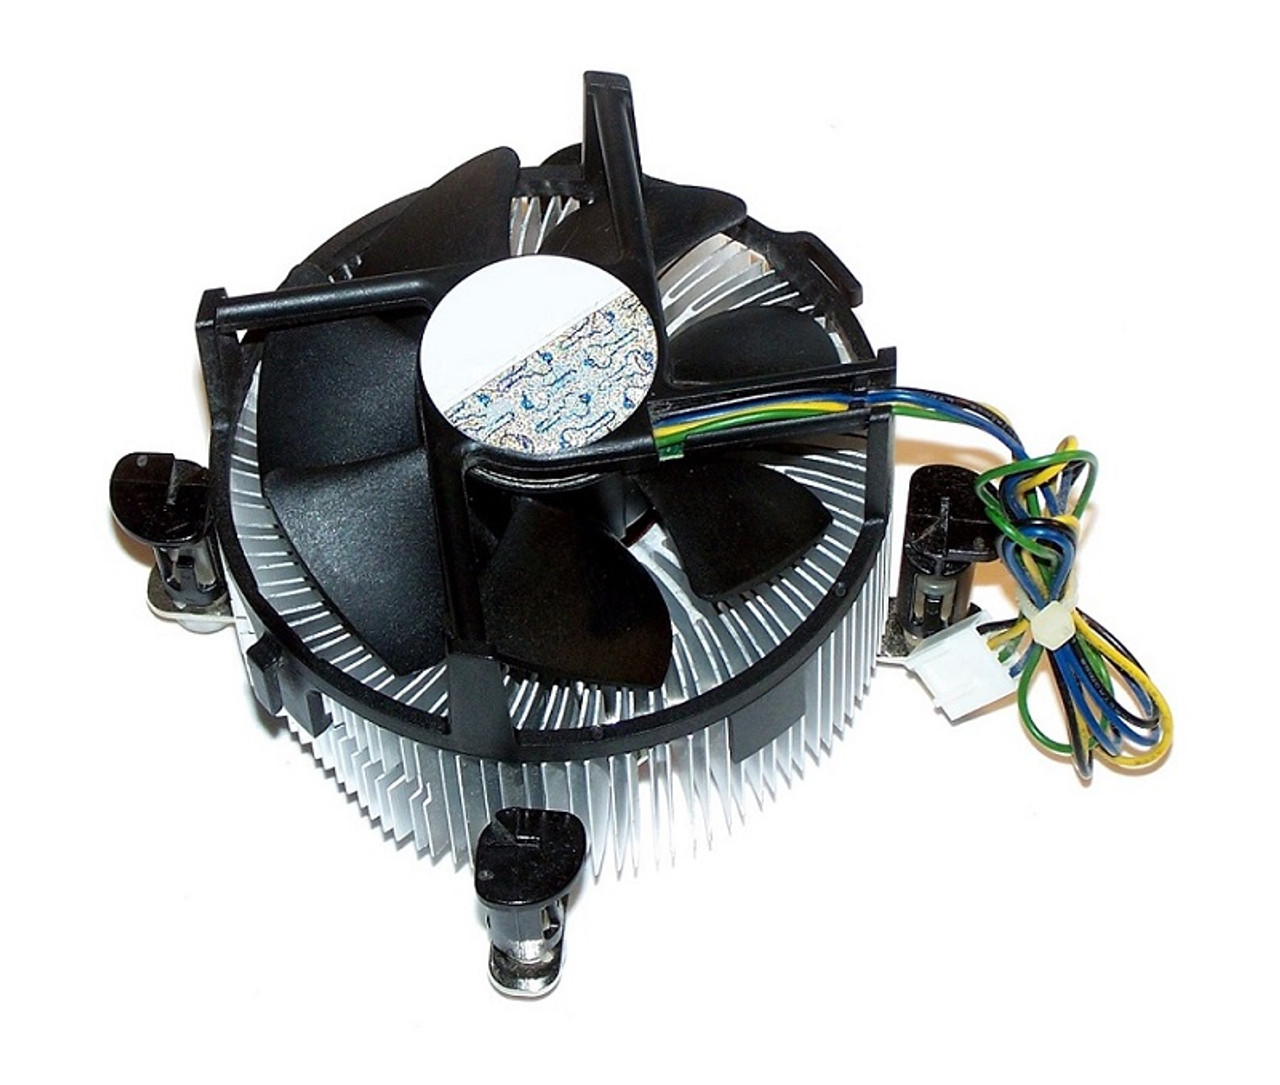 Part No: 727142-001 - HP Processor Fan Heatsink Assembly for Elitedesk 800  G1 Tower Pc